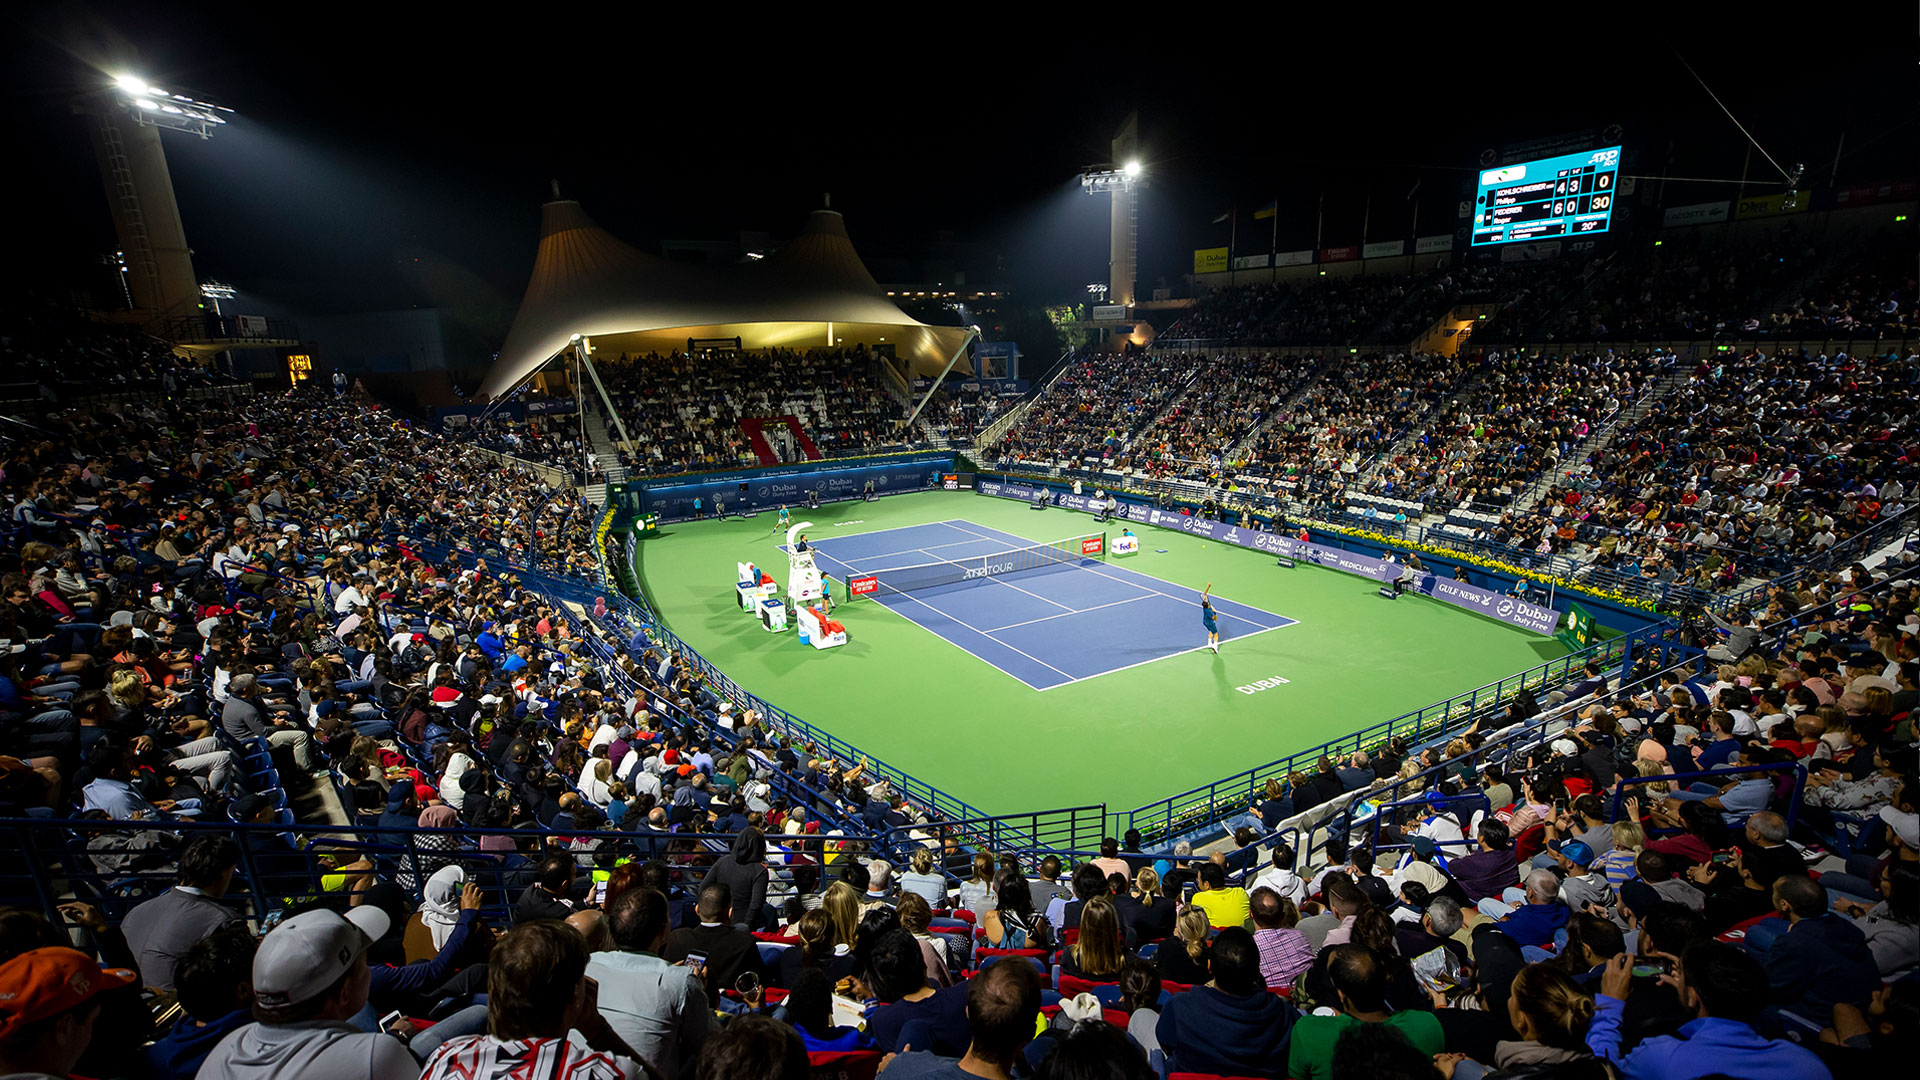 2020 Dubai Duty Free Tennis Championships - 27 February ATP Main Coverage and Highlights